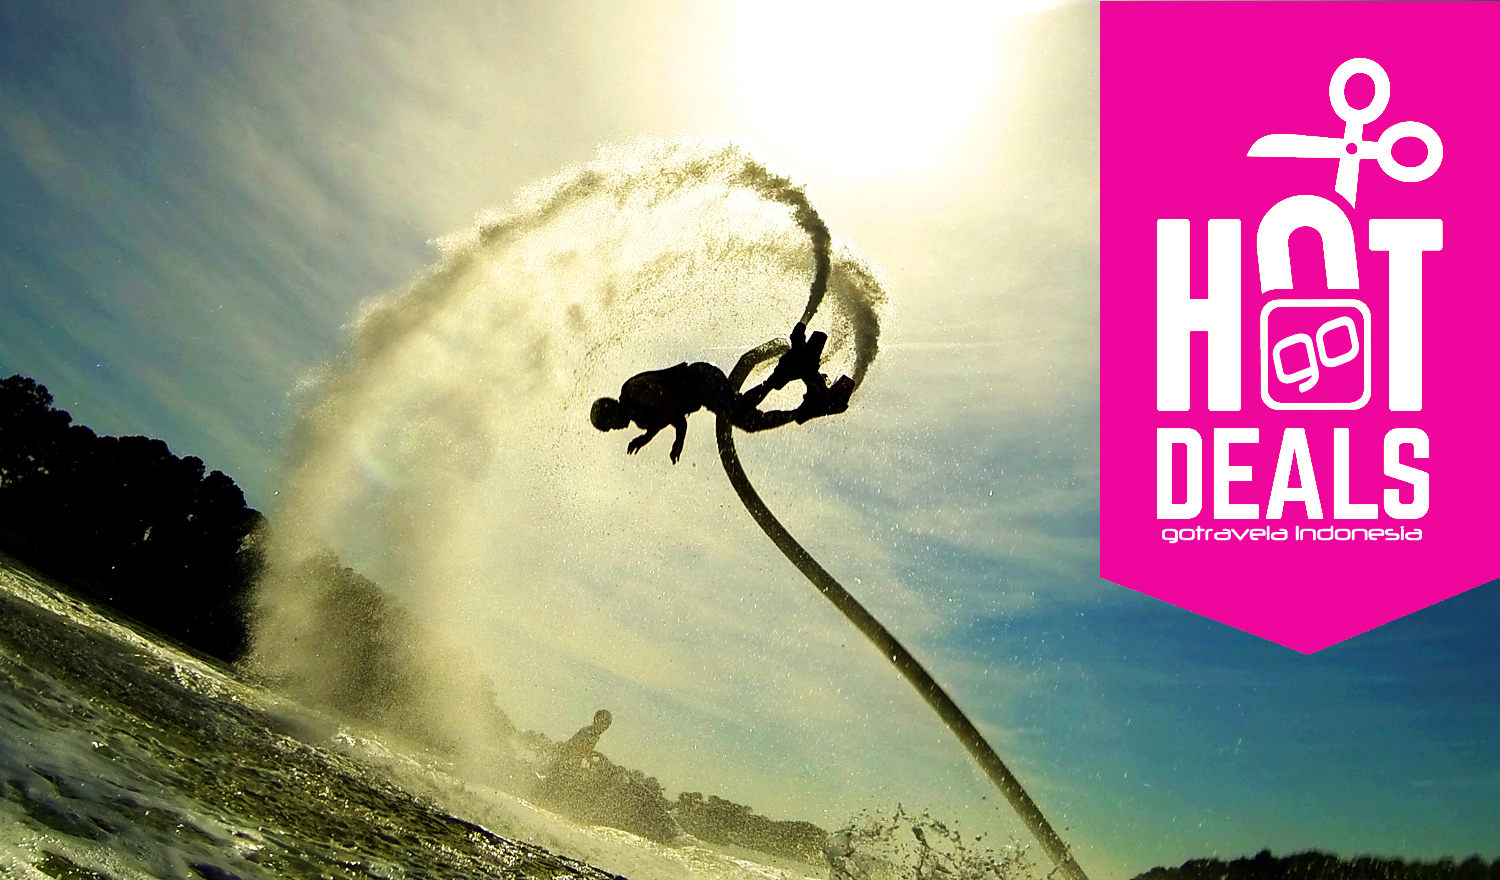 Hot deal flyboard